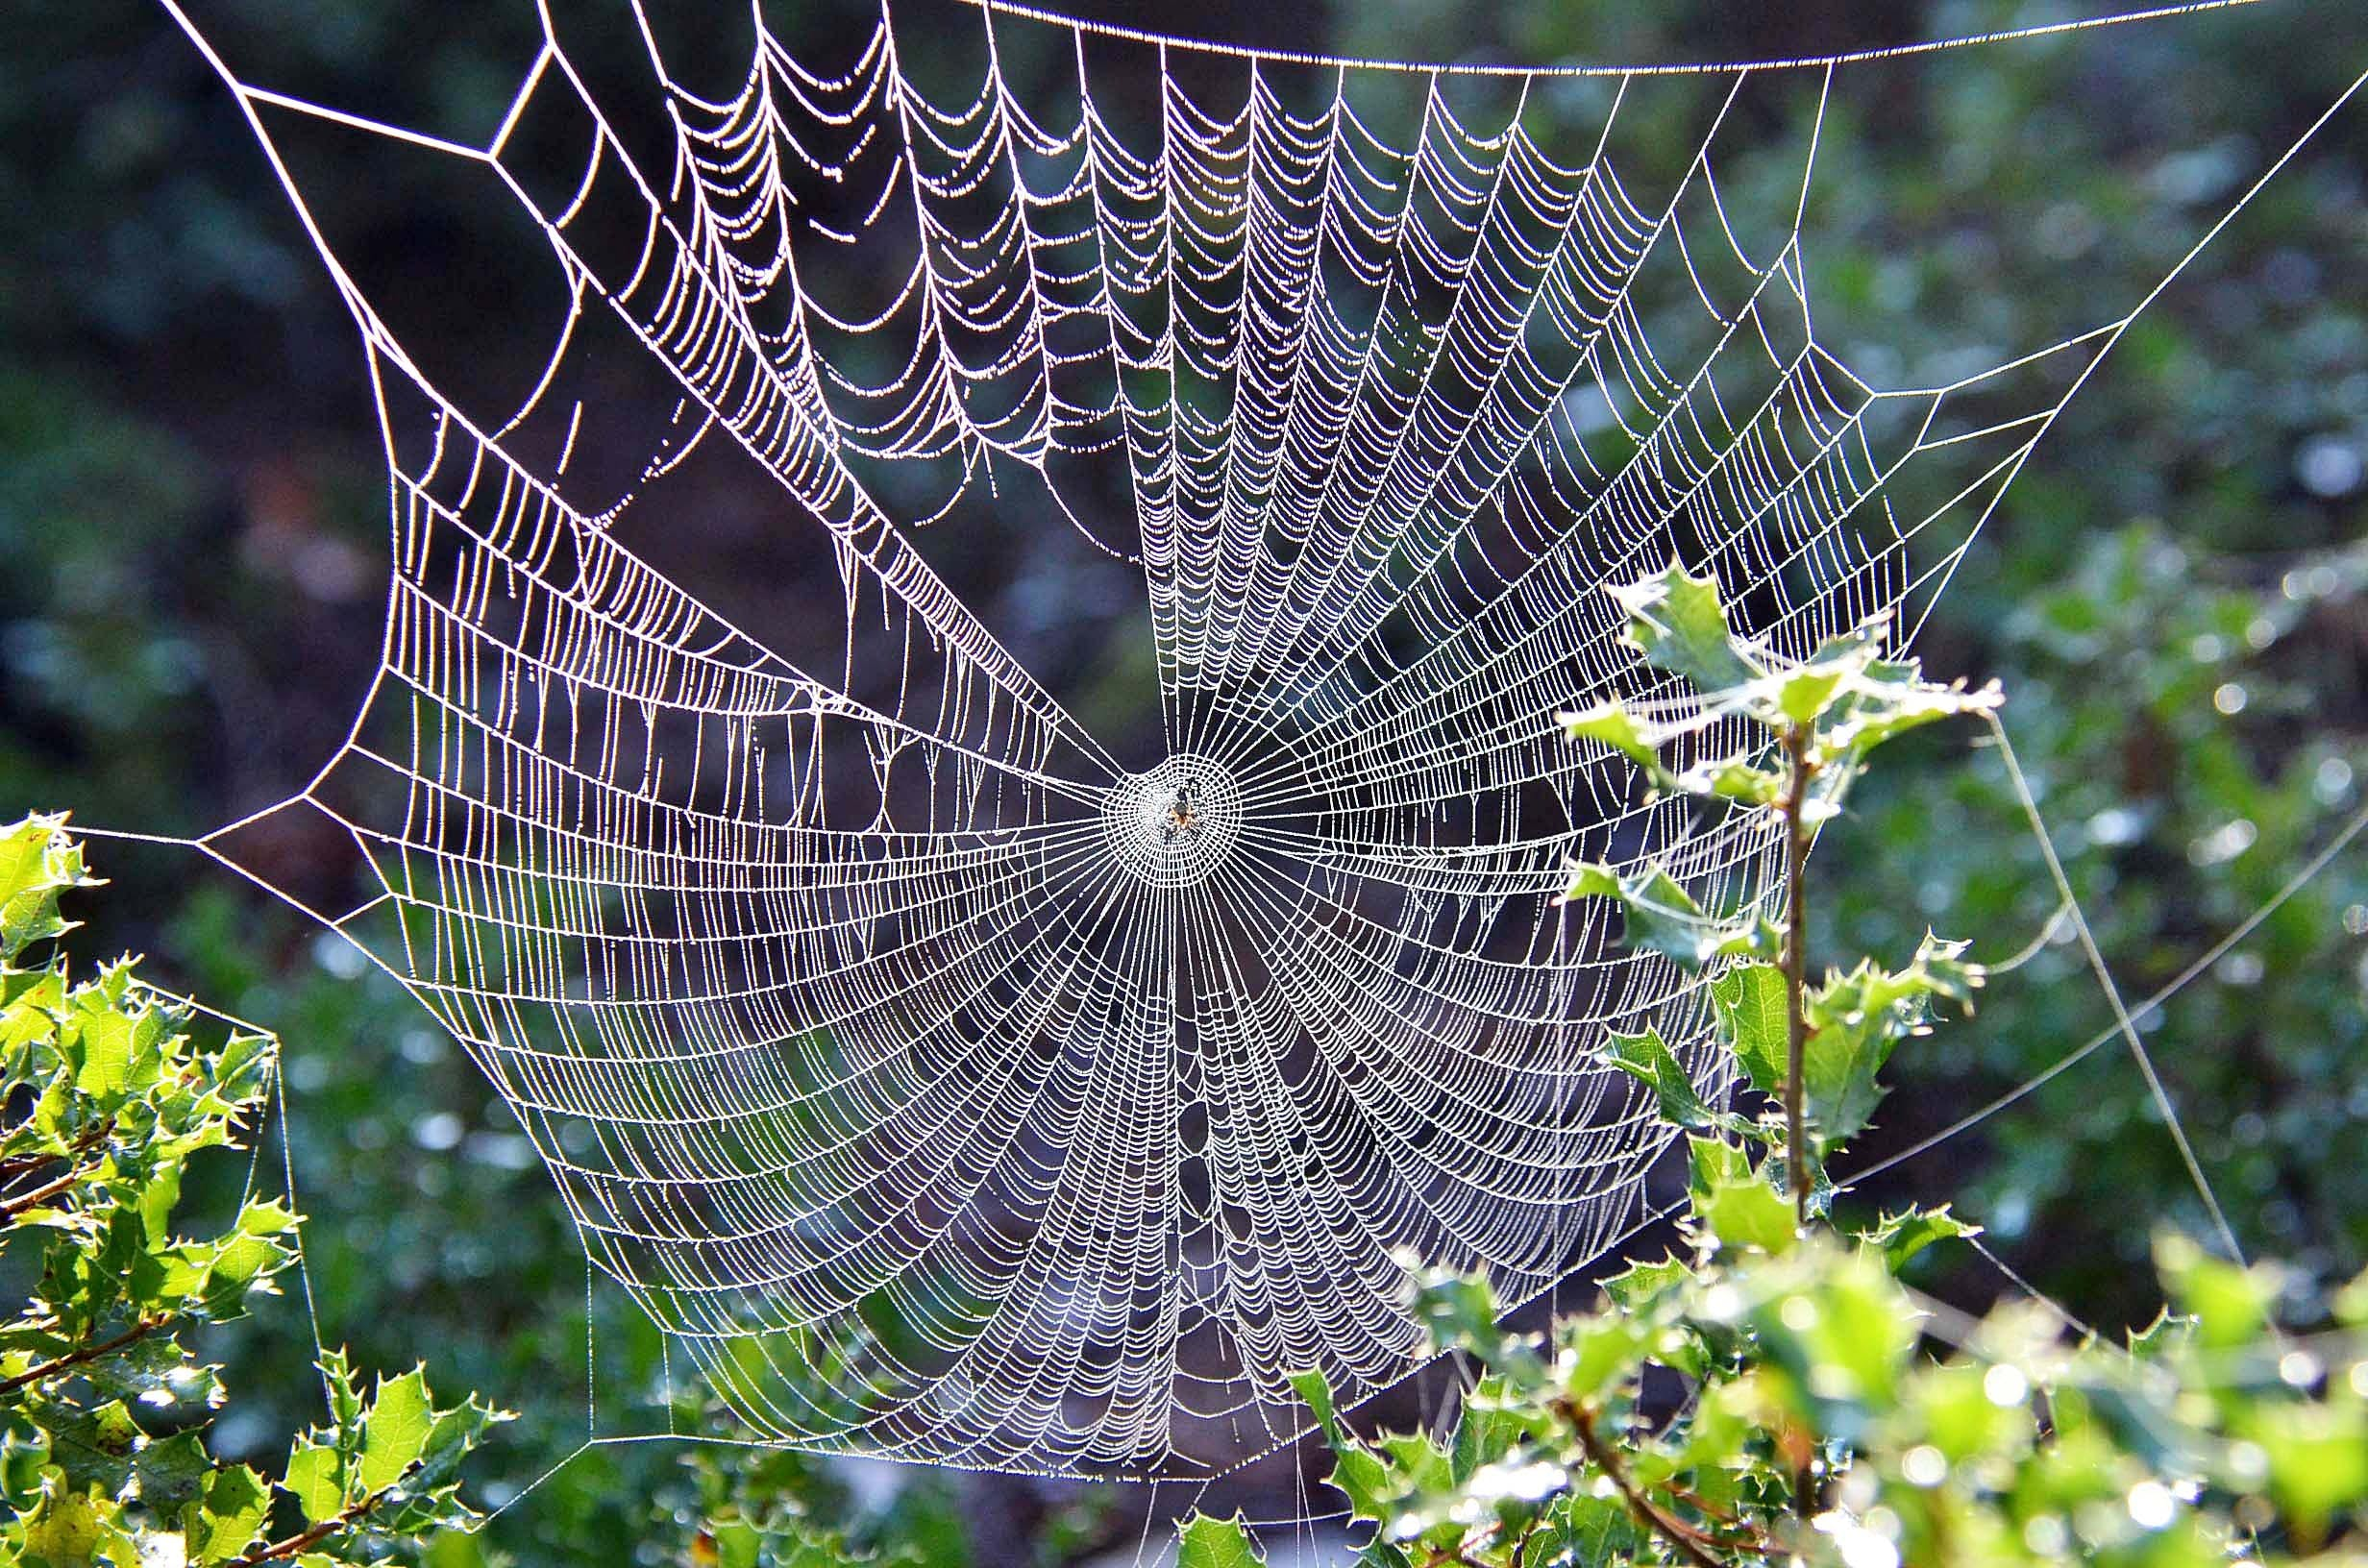 Spider Web Beside Leafed Plant